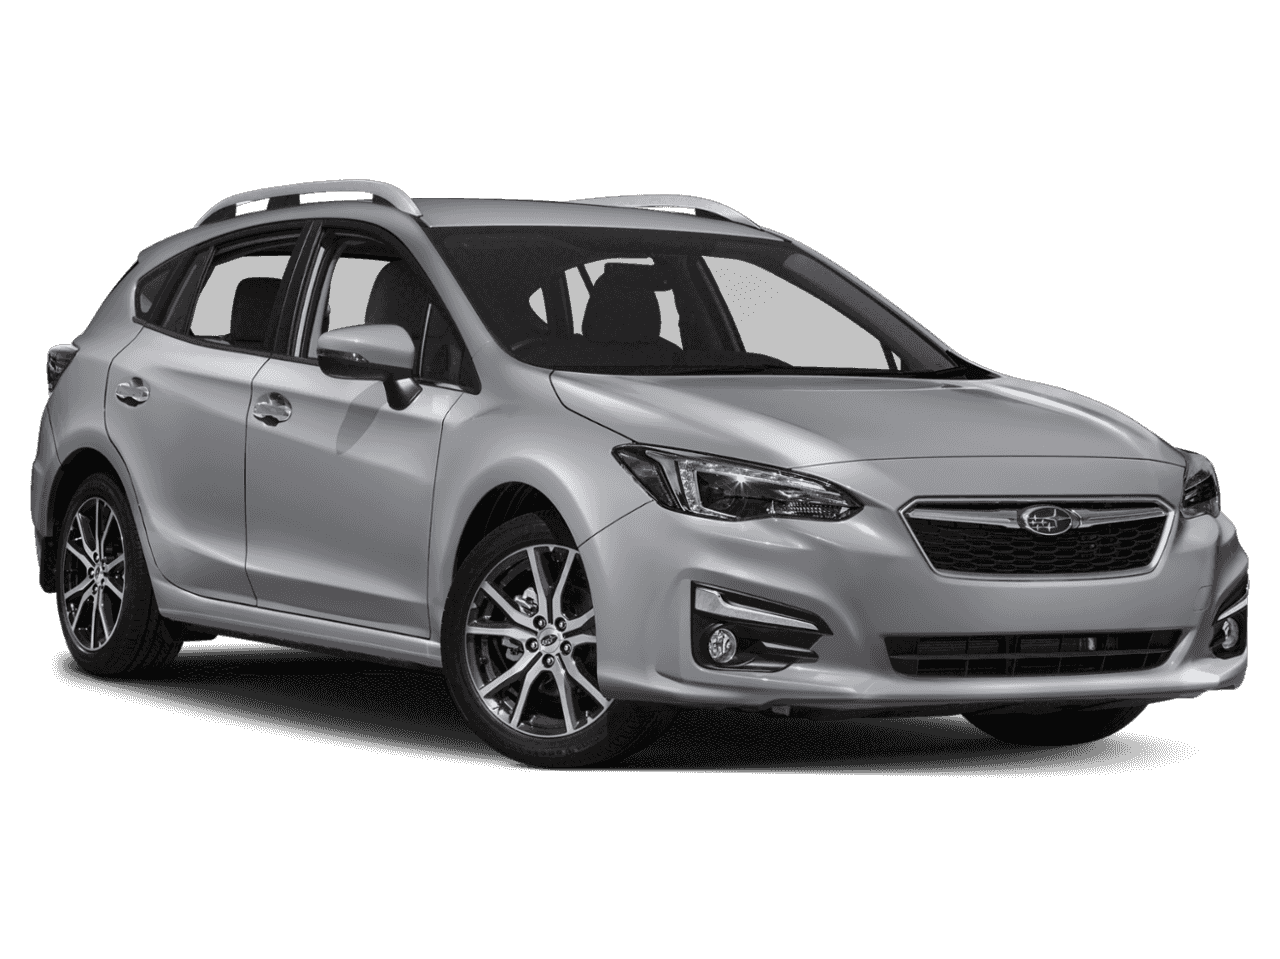 2019 Subaru Impreza Limited With Navigation & AWD